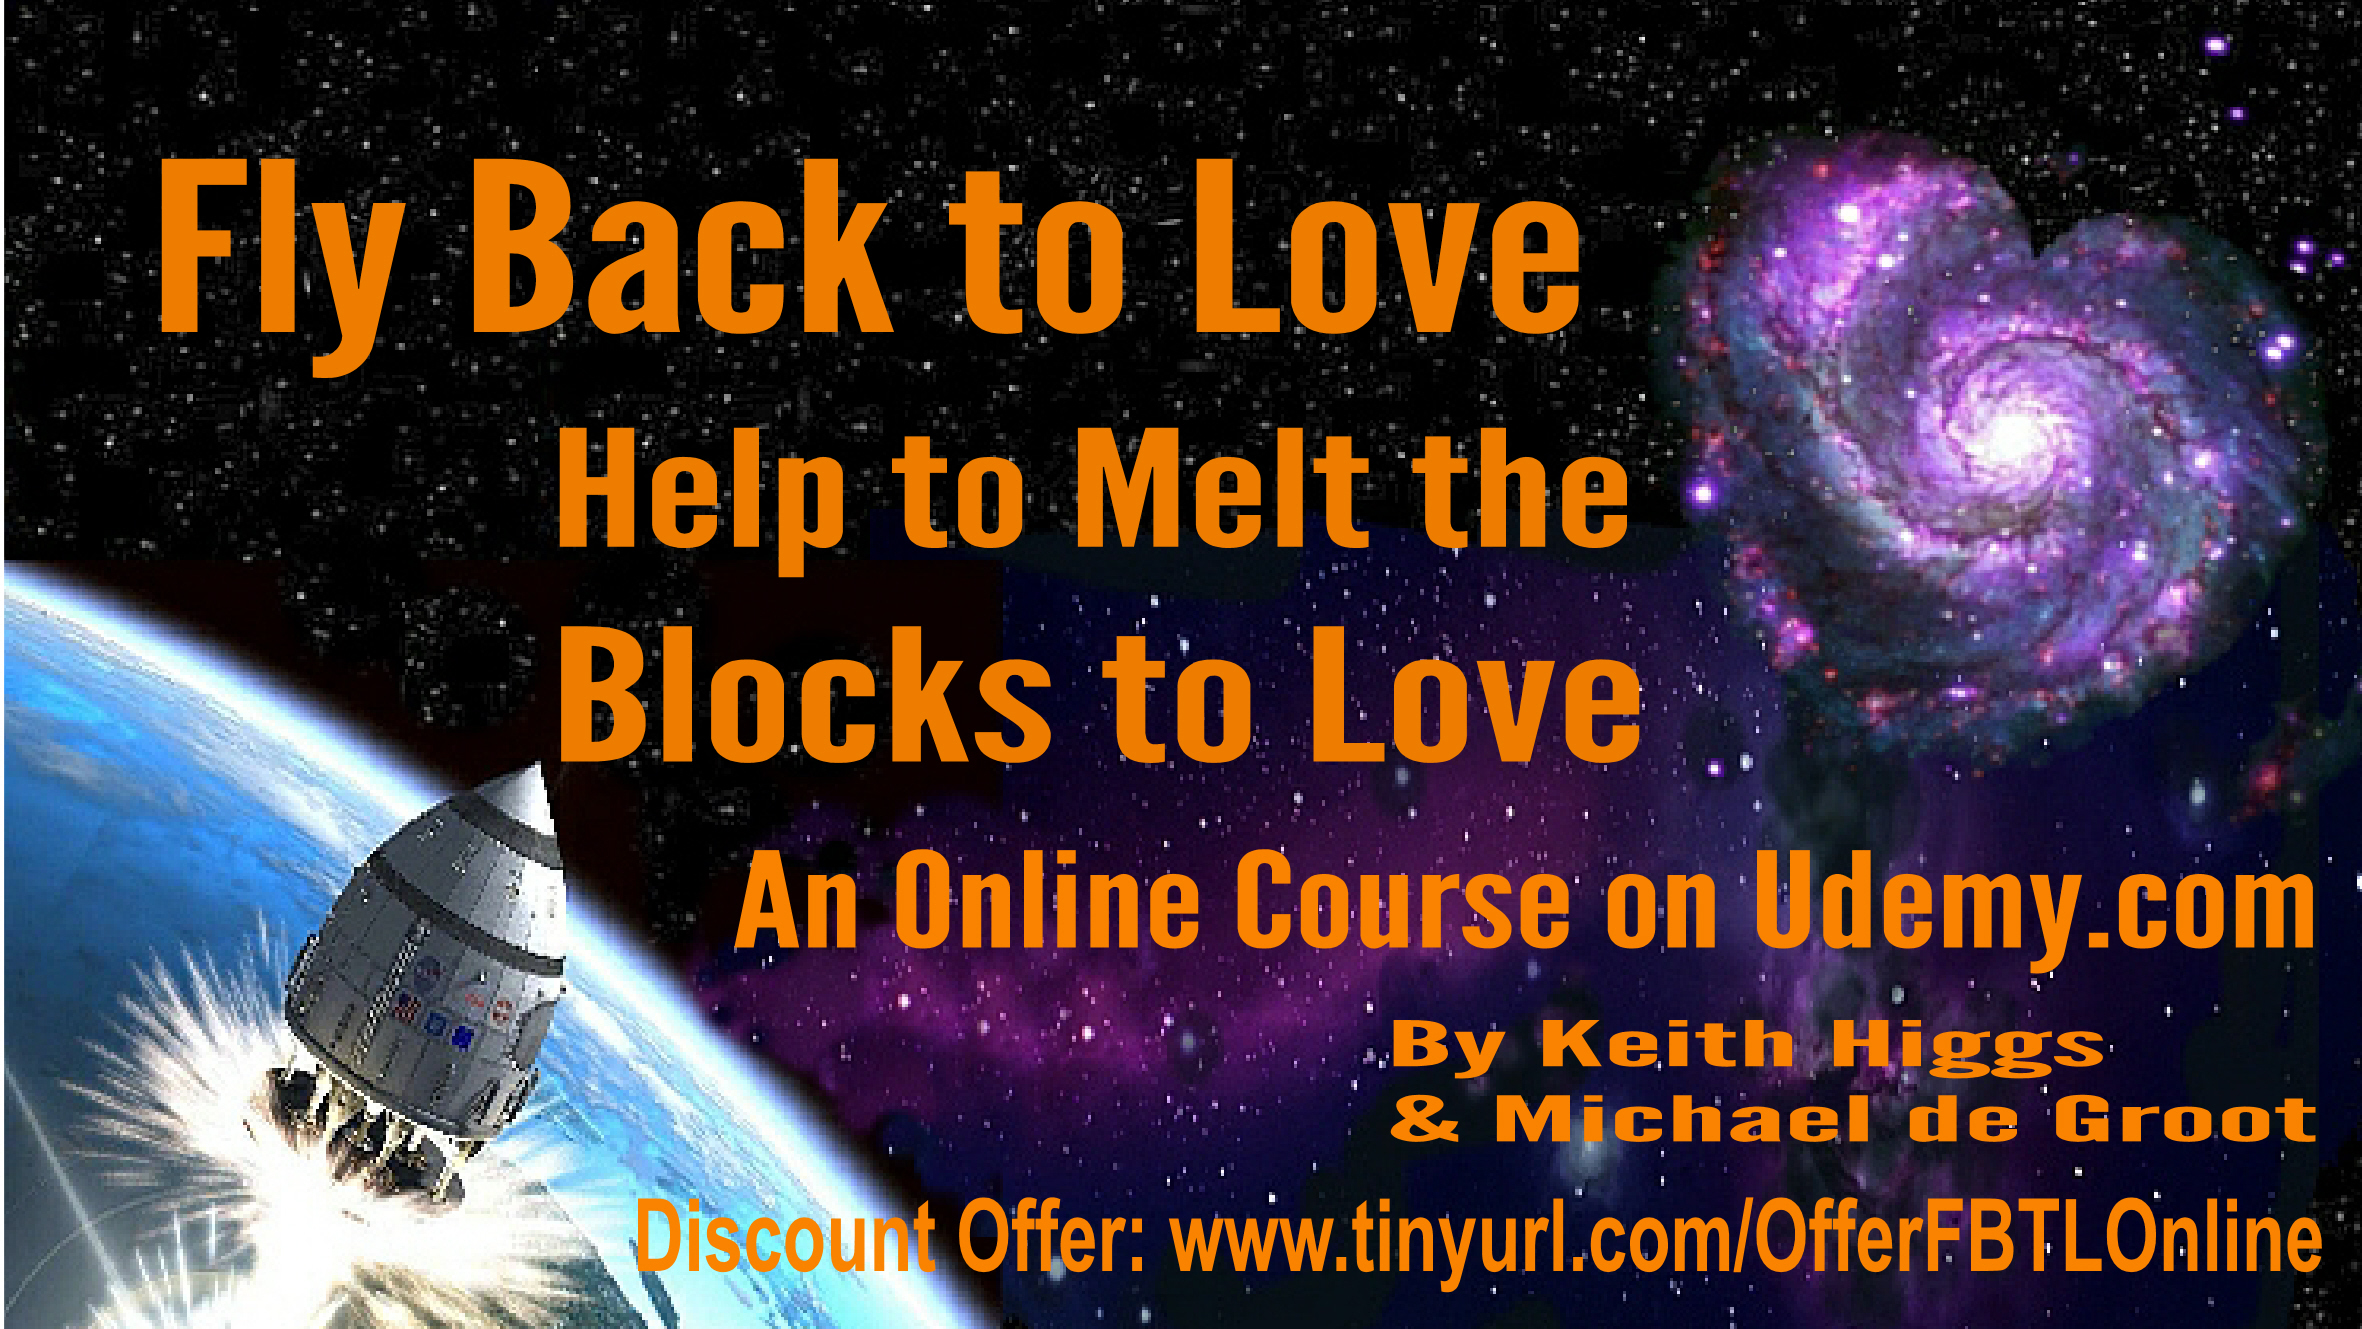 Online Course Fly Back to Love